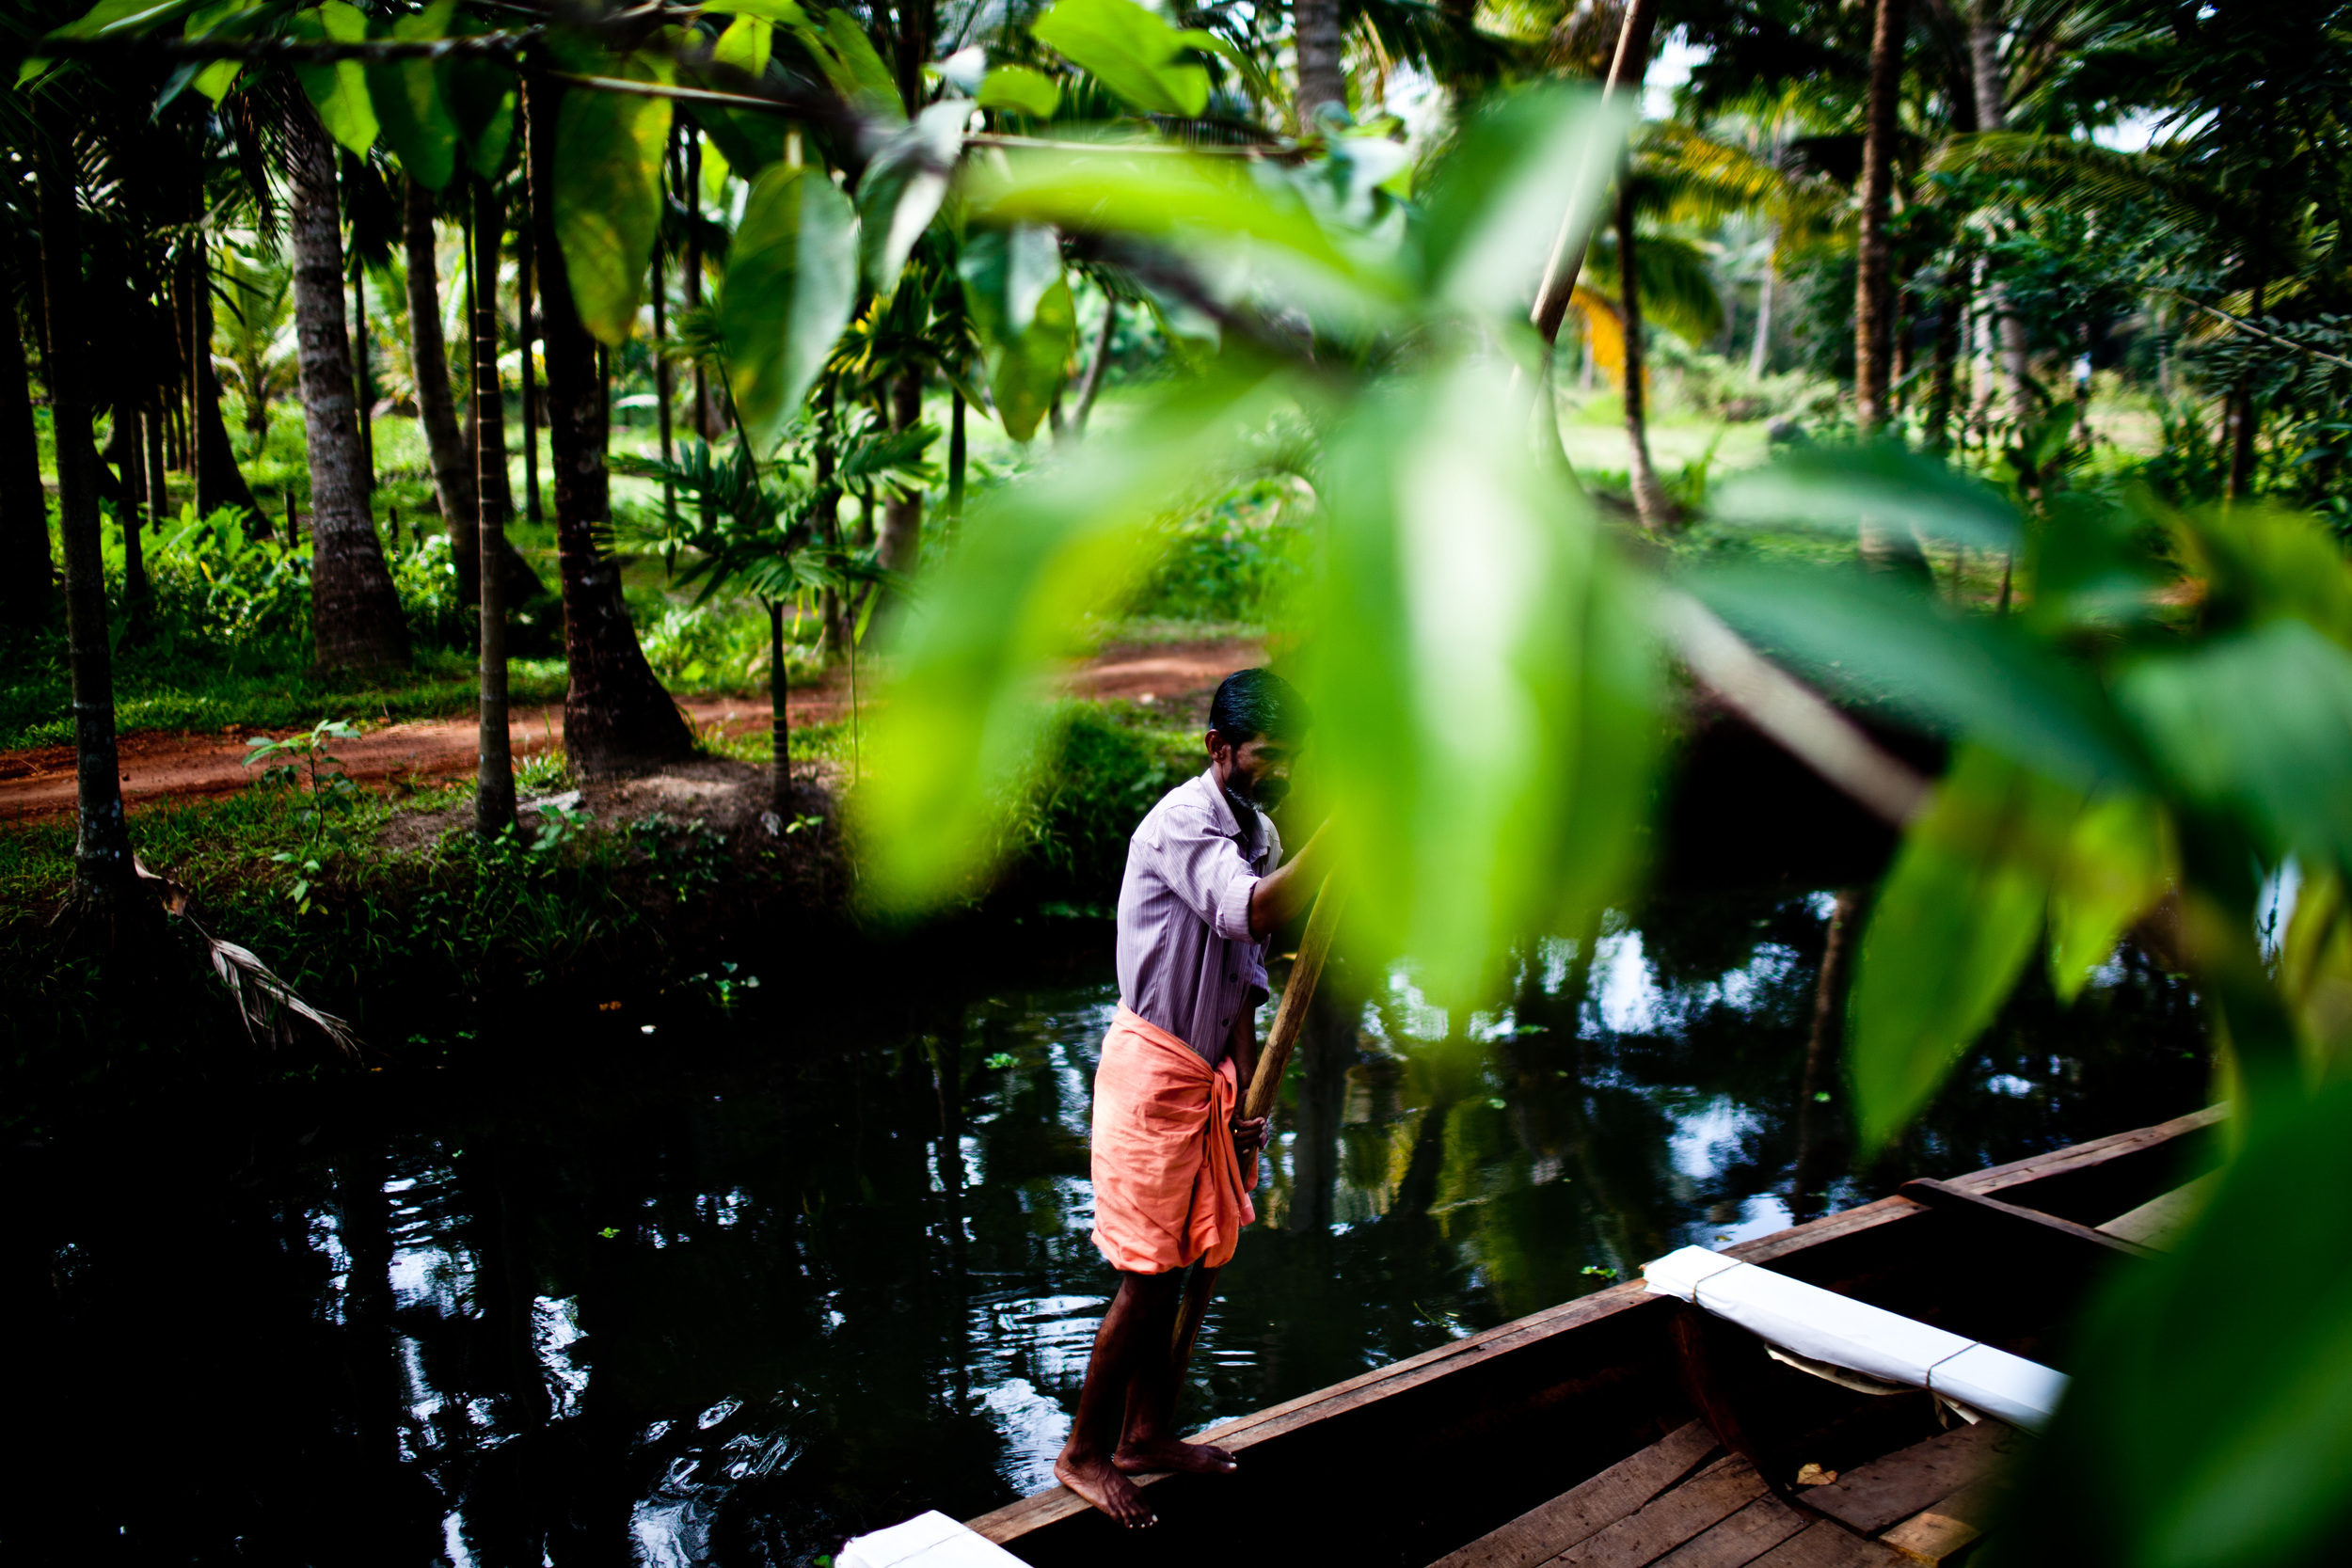 A man paddles a boat in the Backwaters in Kerala, India.